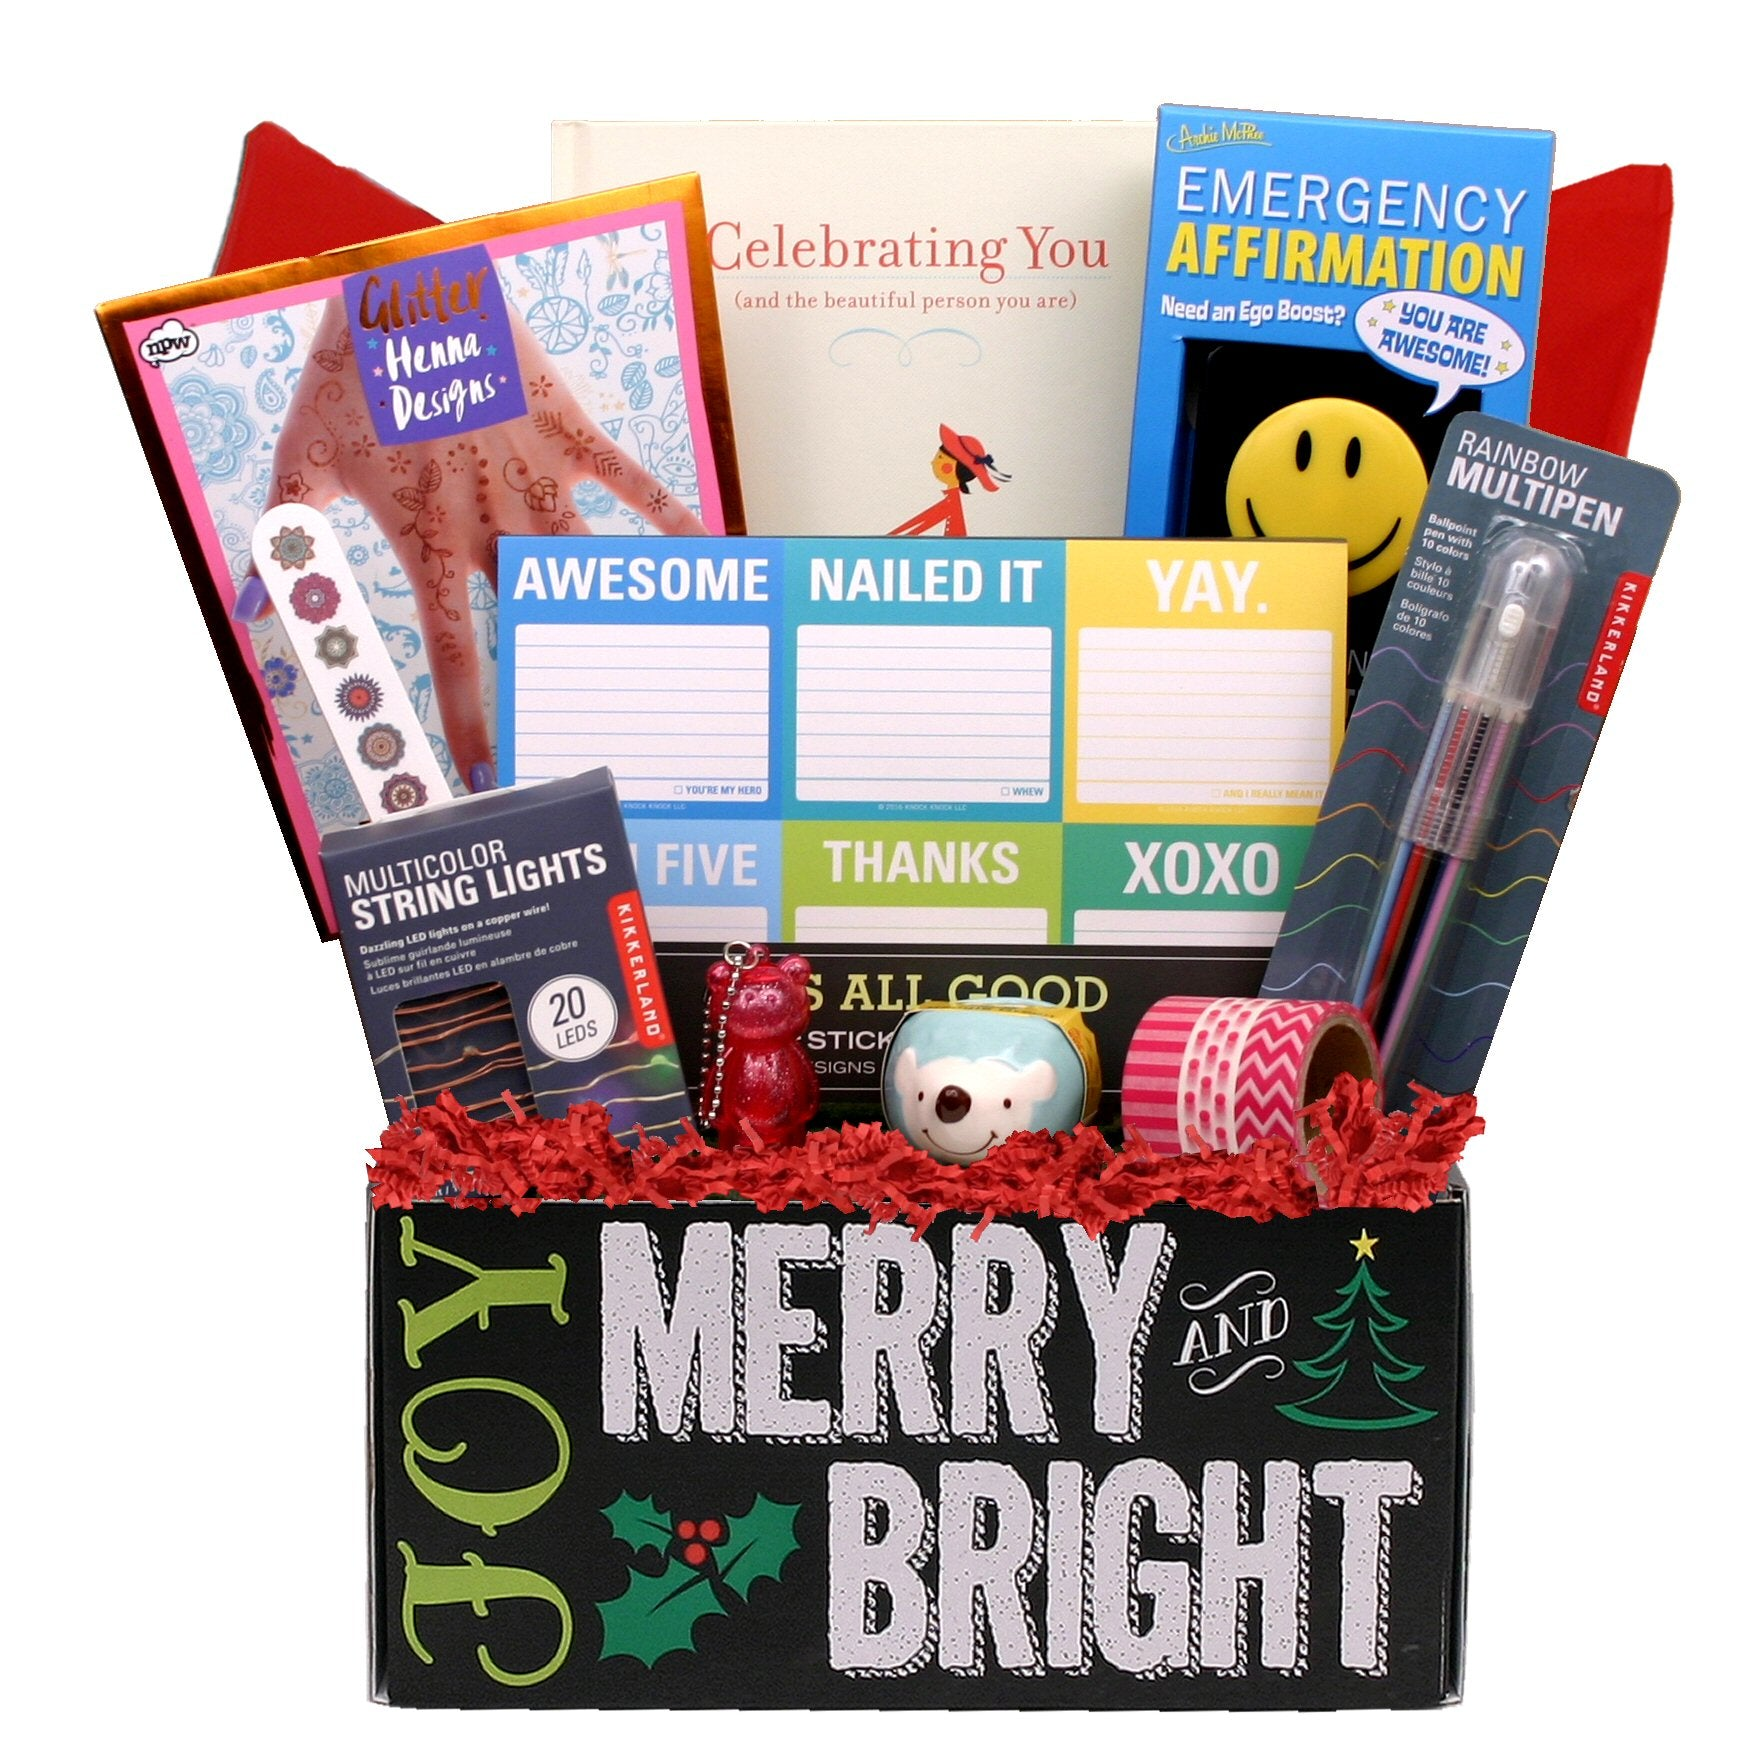 Celebrating You Holiday Gift - beyondbookmarks.com